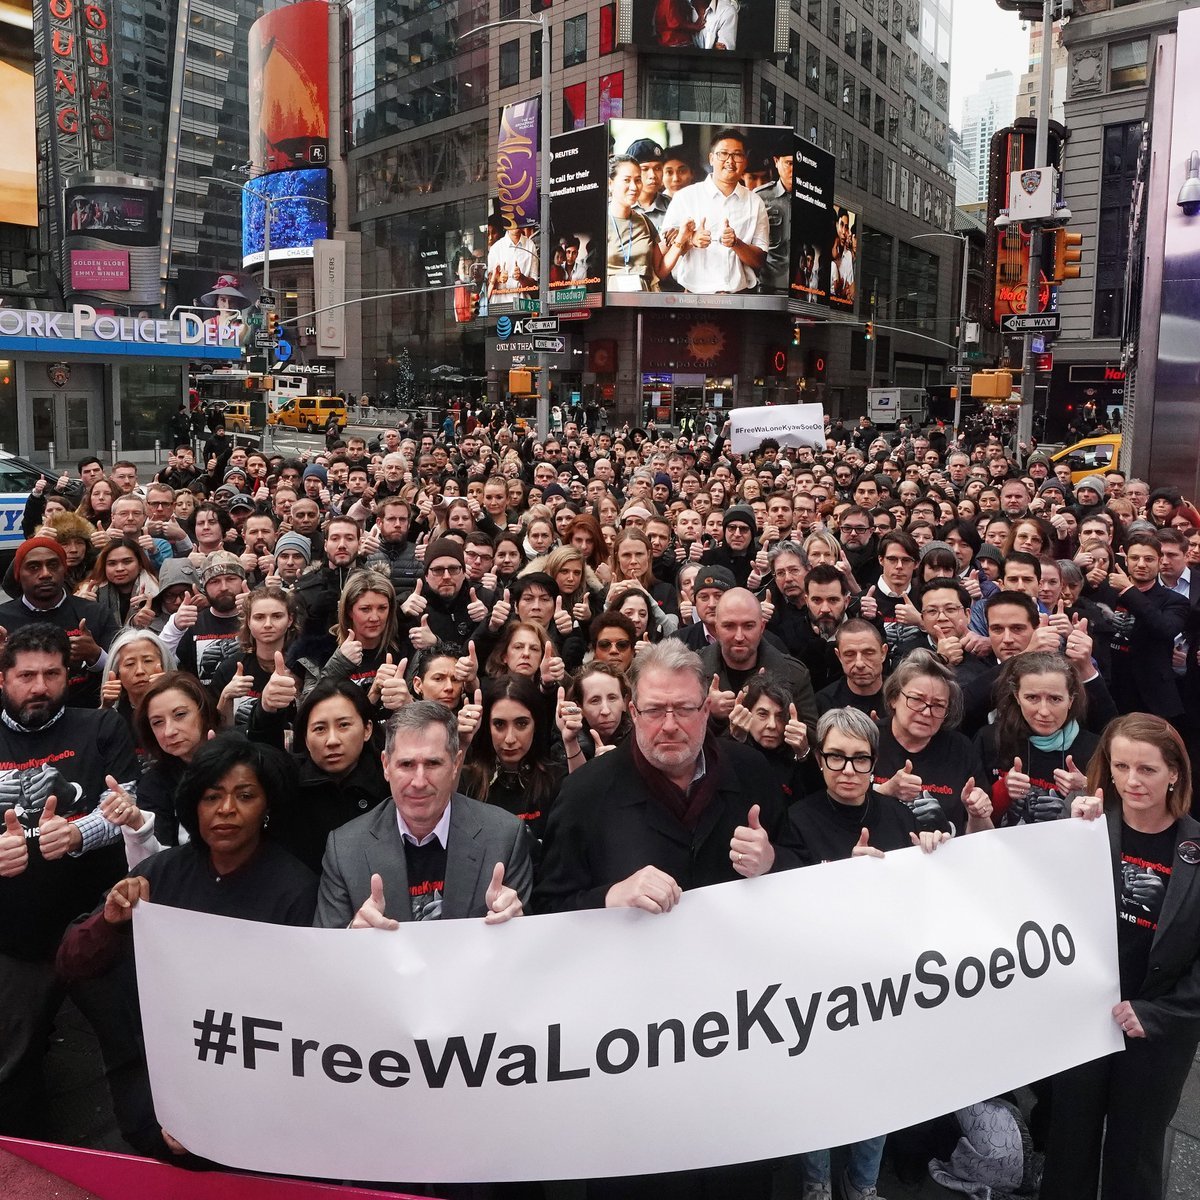 This is the EPIC @Reuters New York photo taken today in @TimesSquareNYC in front of @thomsonreuters. Please share it far and wide.  The time has come to #FreeWaLoneKyawSoeOo.